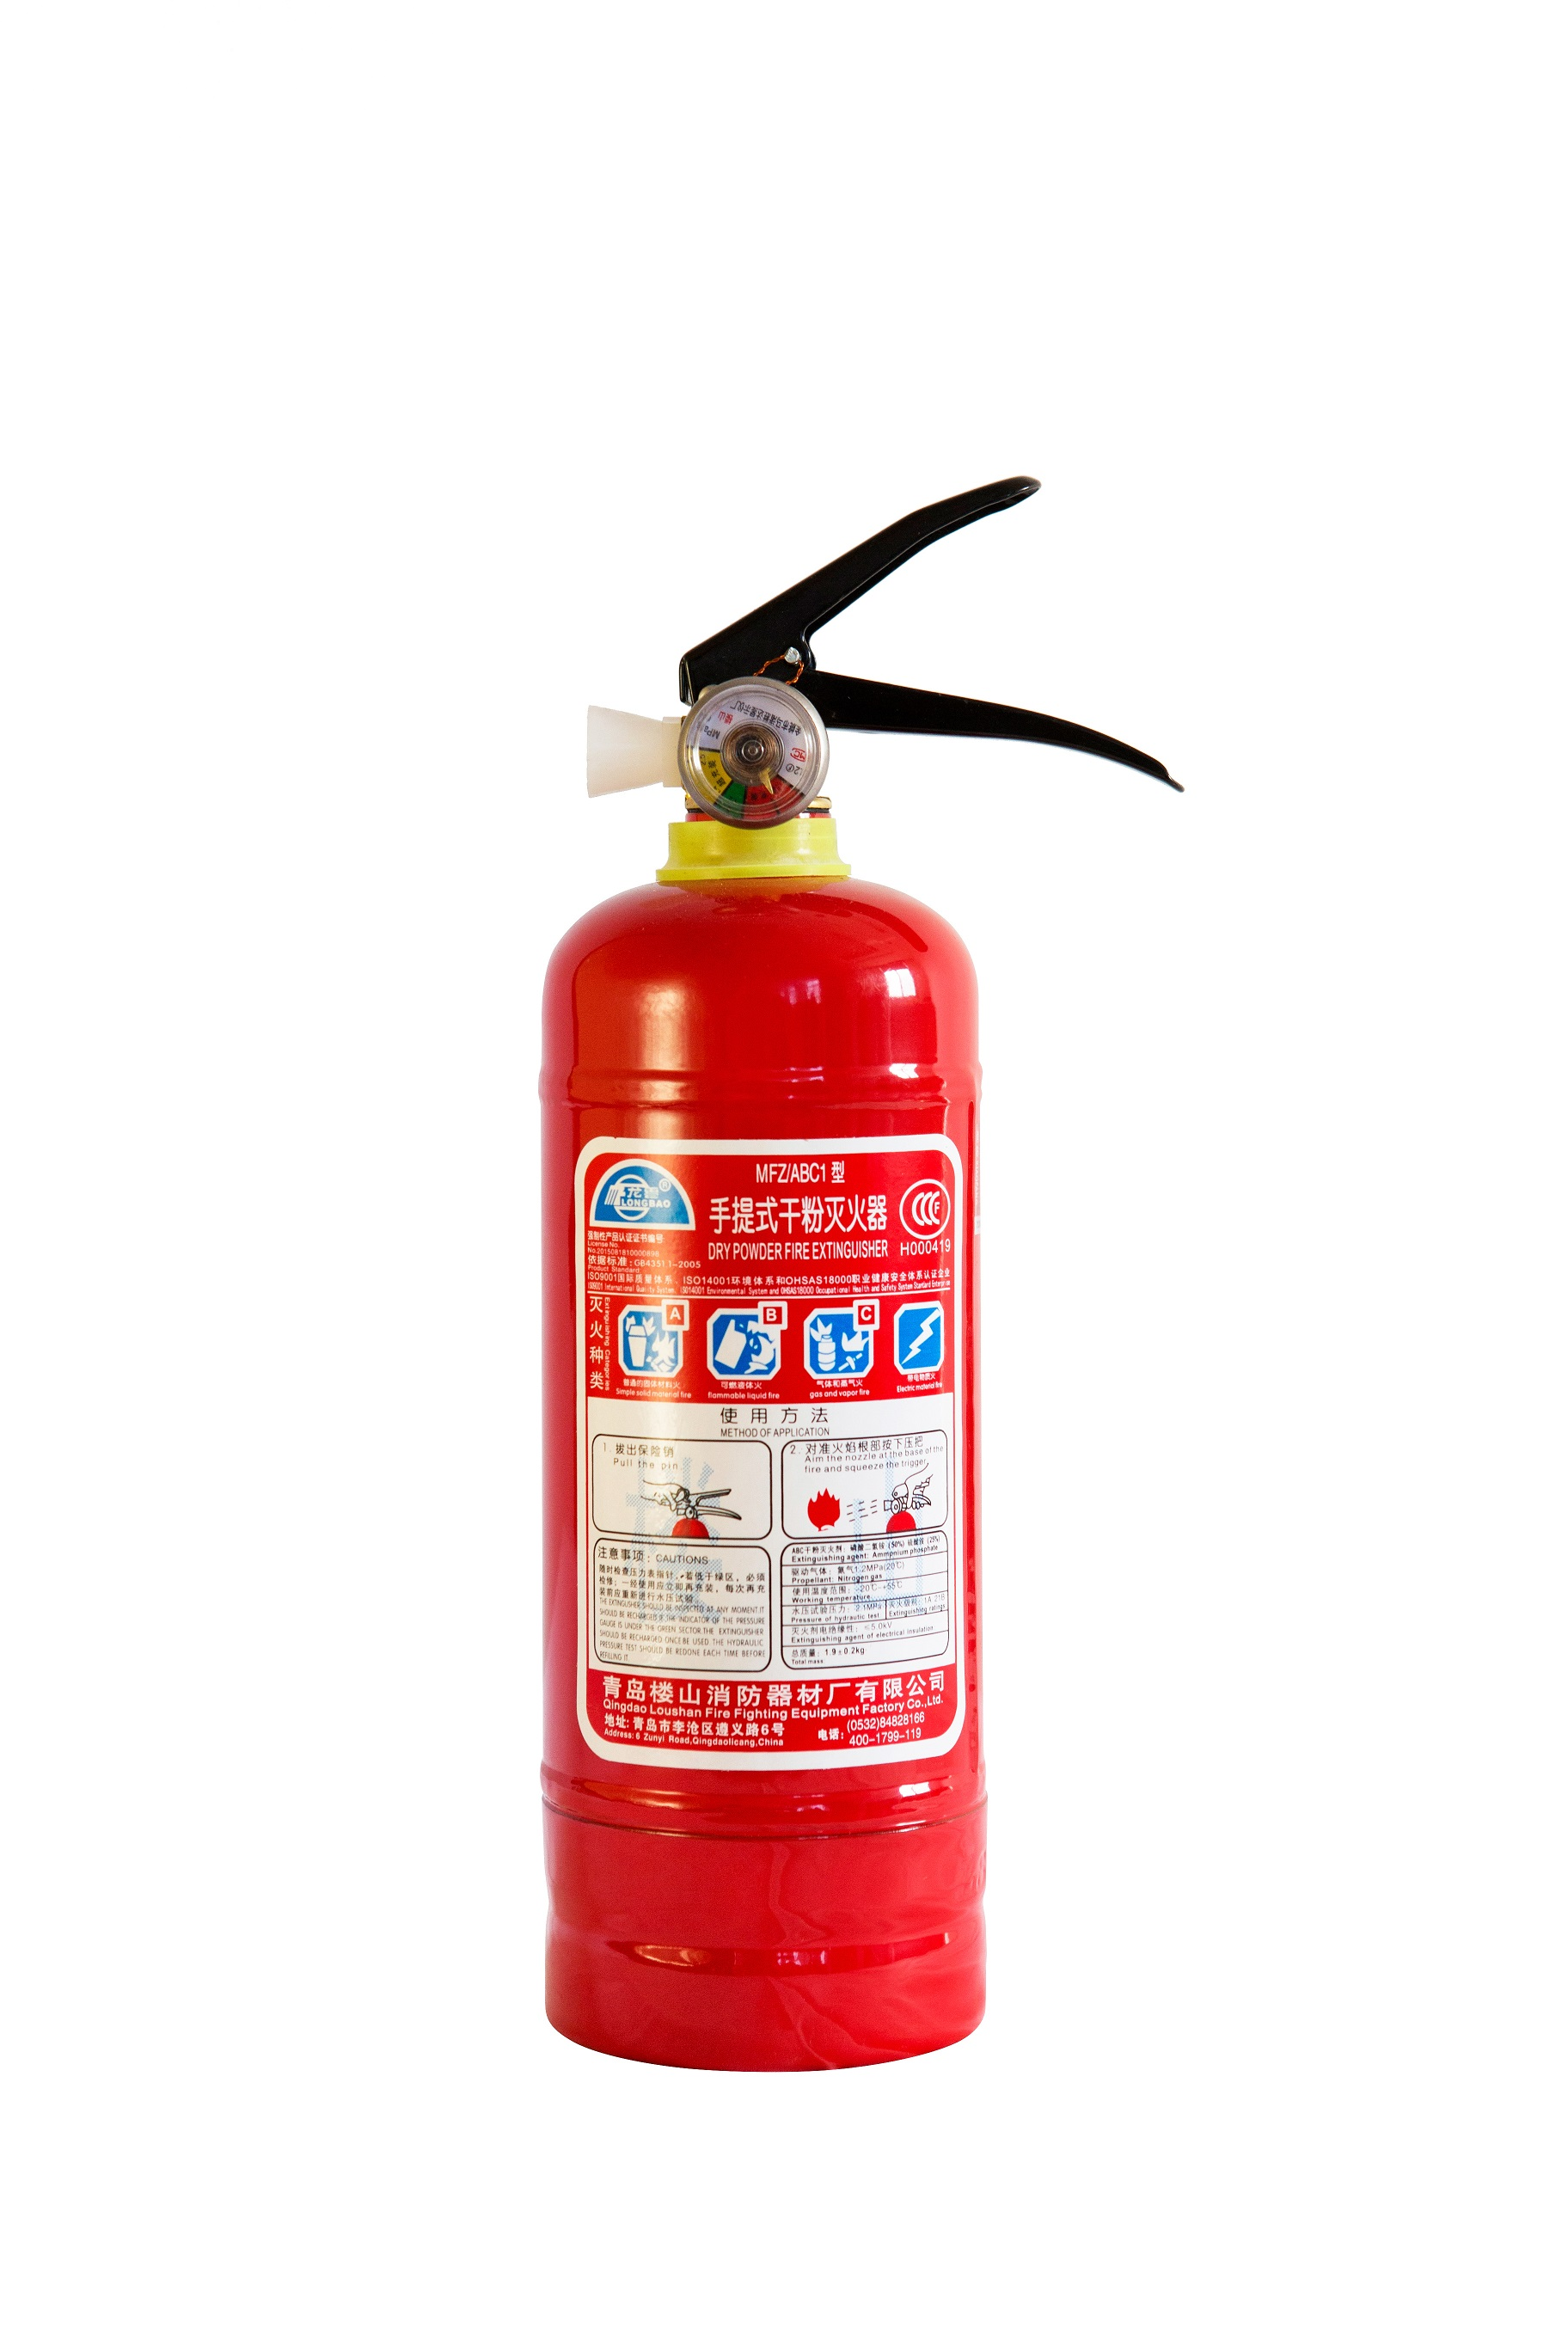 MFZ / ABC1 dry powder fire extinguisher